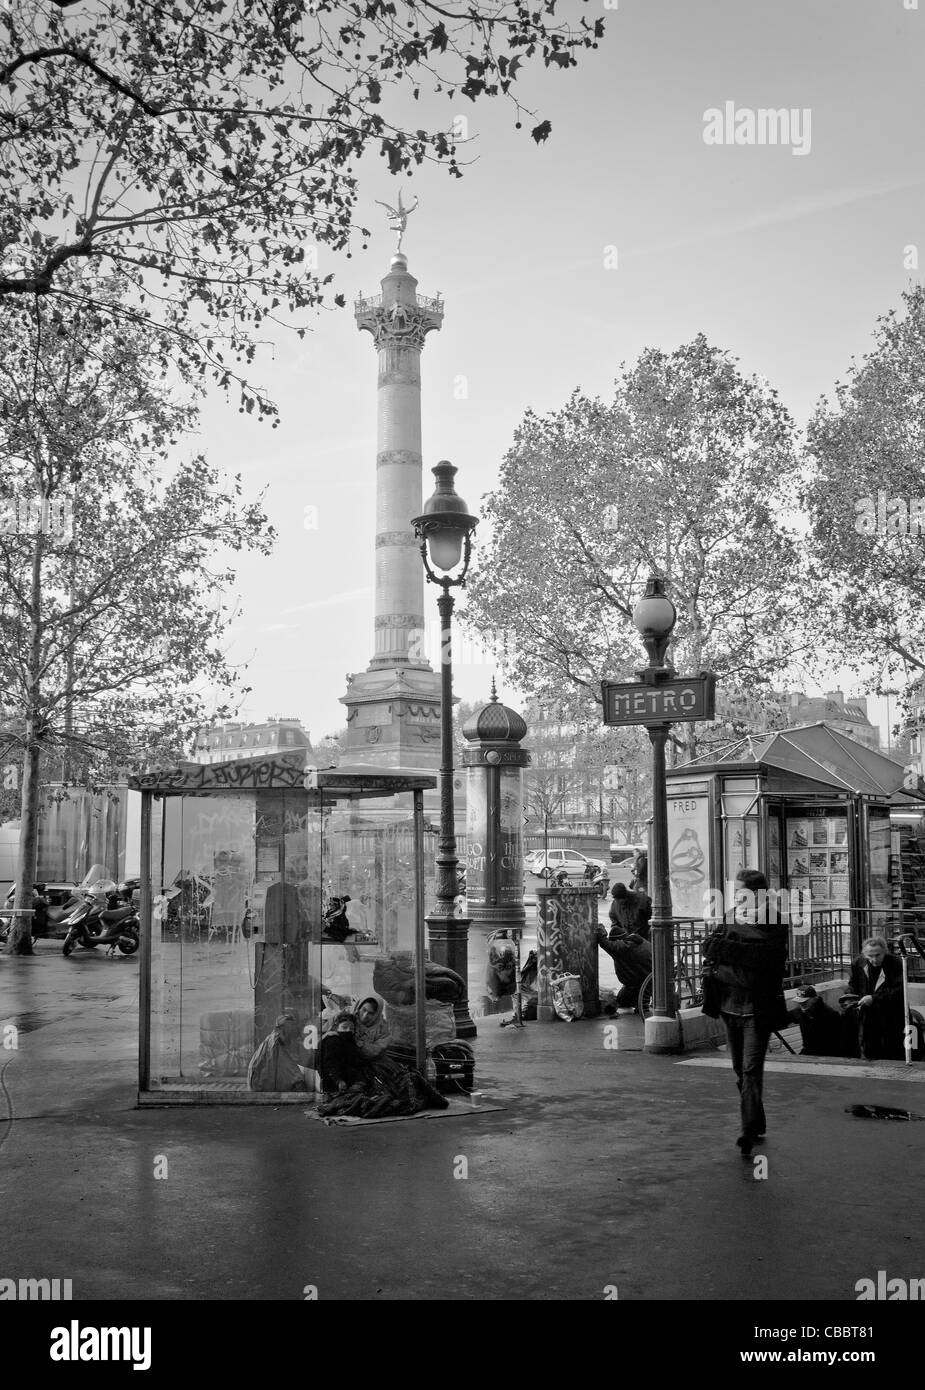 the monuments of Paris homeless,storming of the Bastille., the capture of the phone booth,like the good old days. - Stock Image